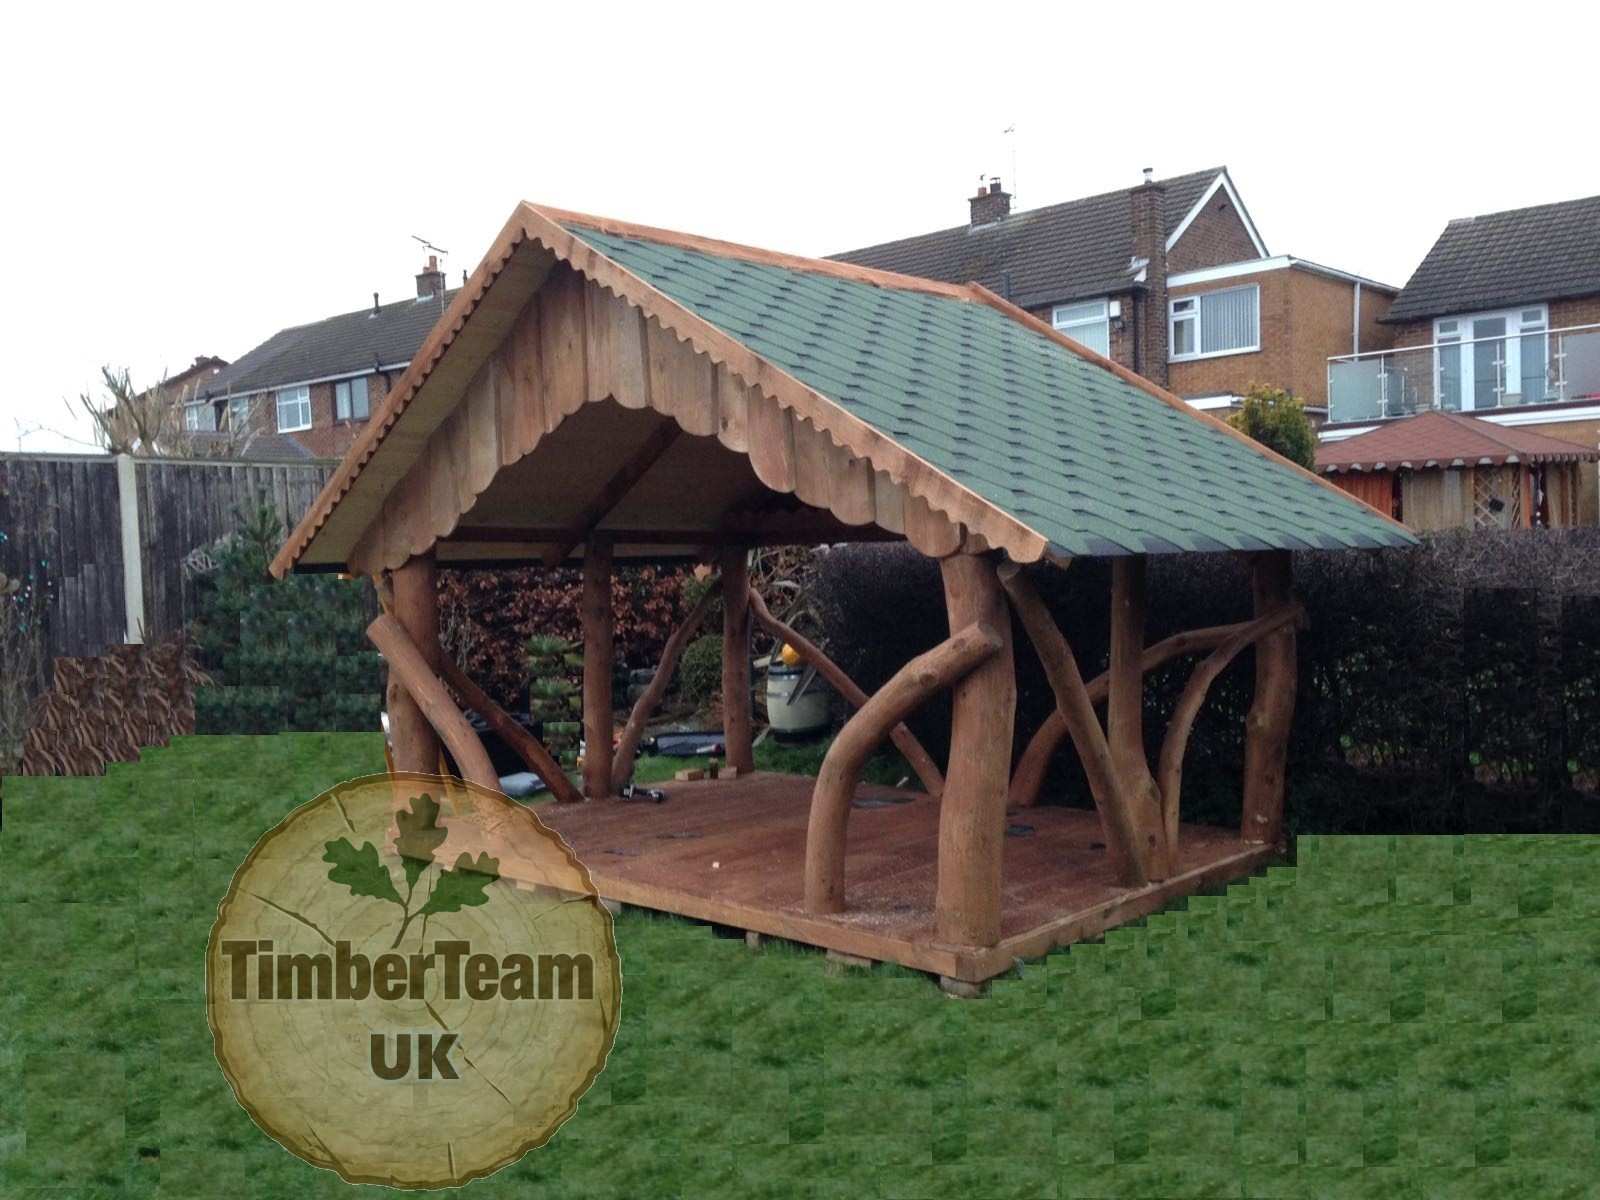 Timber team uk rustic handmade gazebos and garden furniture for Hot tub shelter